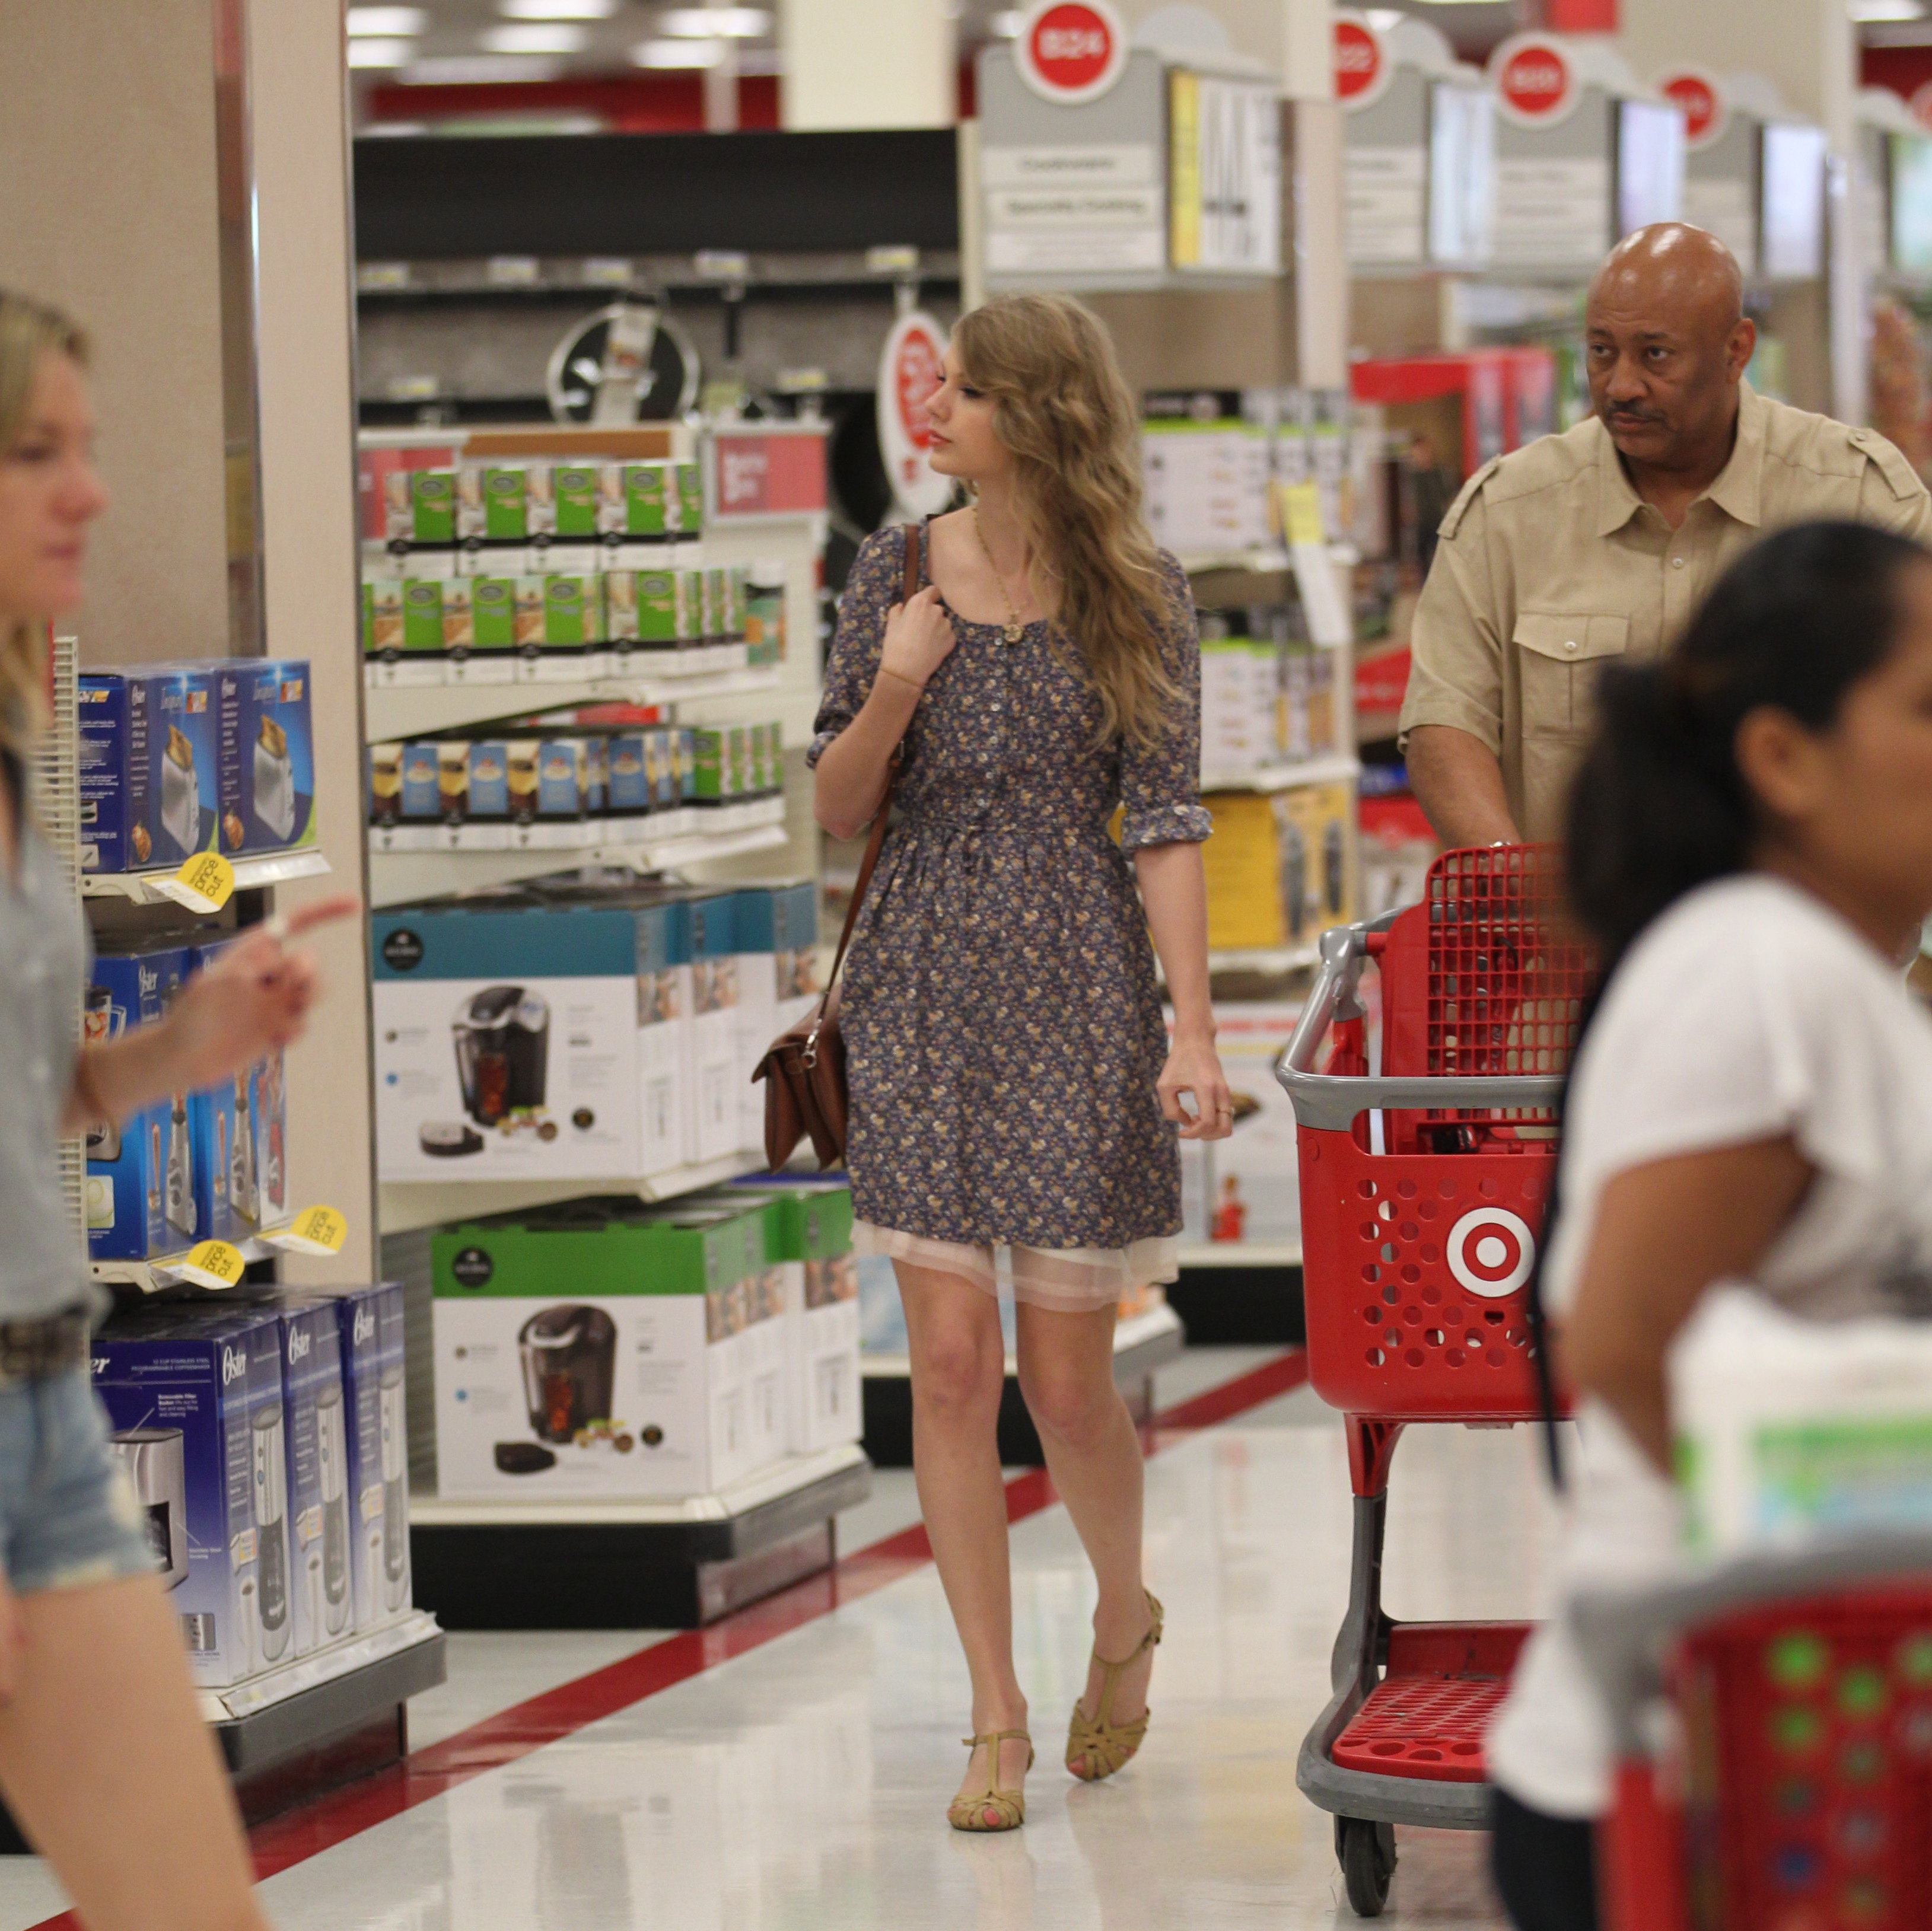 Taylor Swift Shopping At Target, California April 4, 2011 | TAYLOR SWIFT INDONESIA3257 x 3256